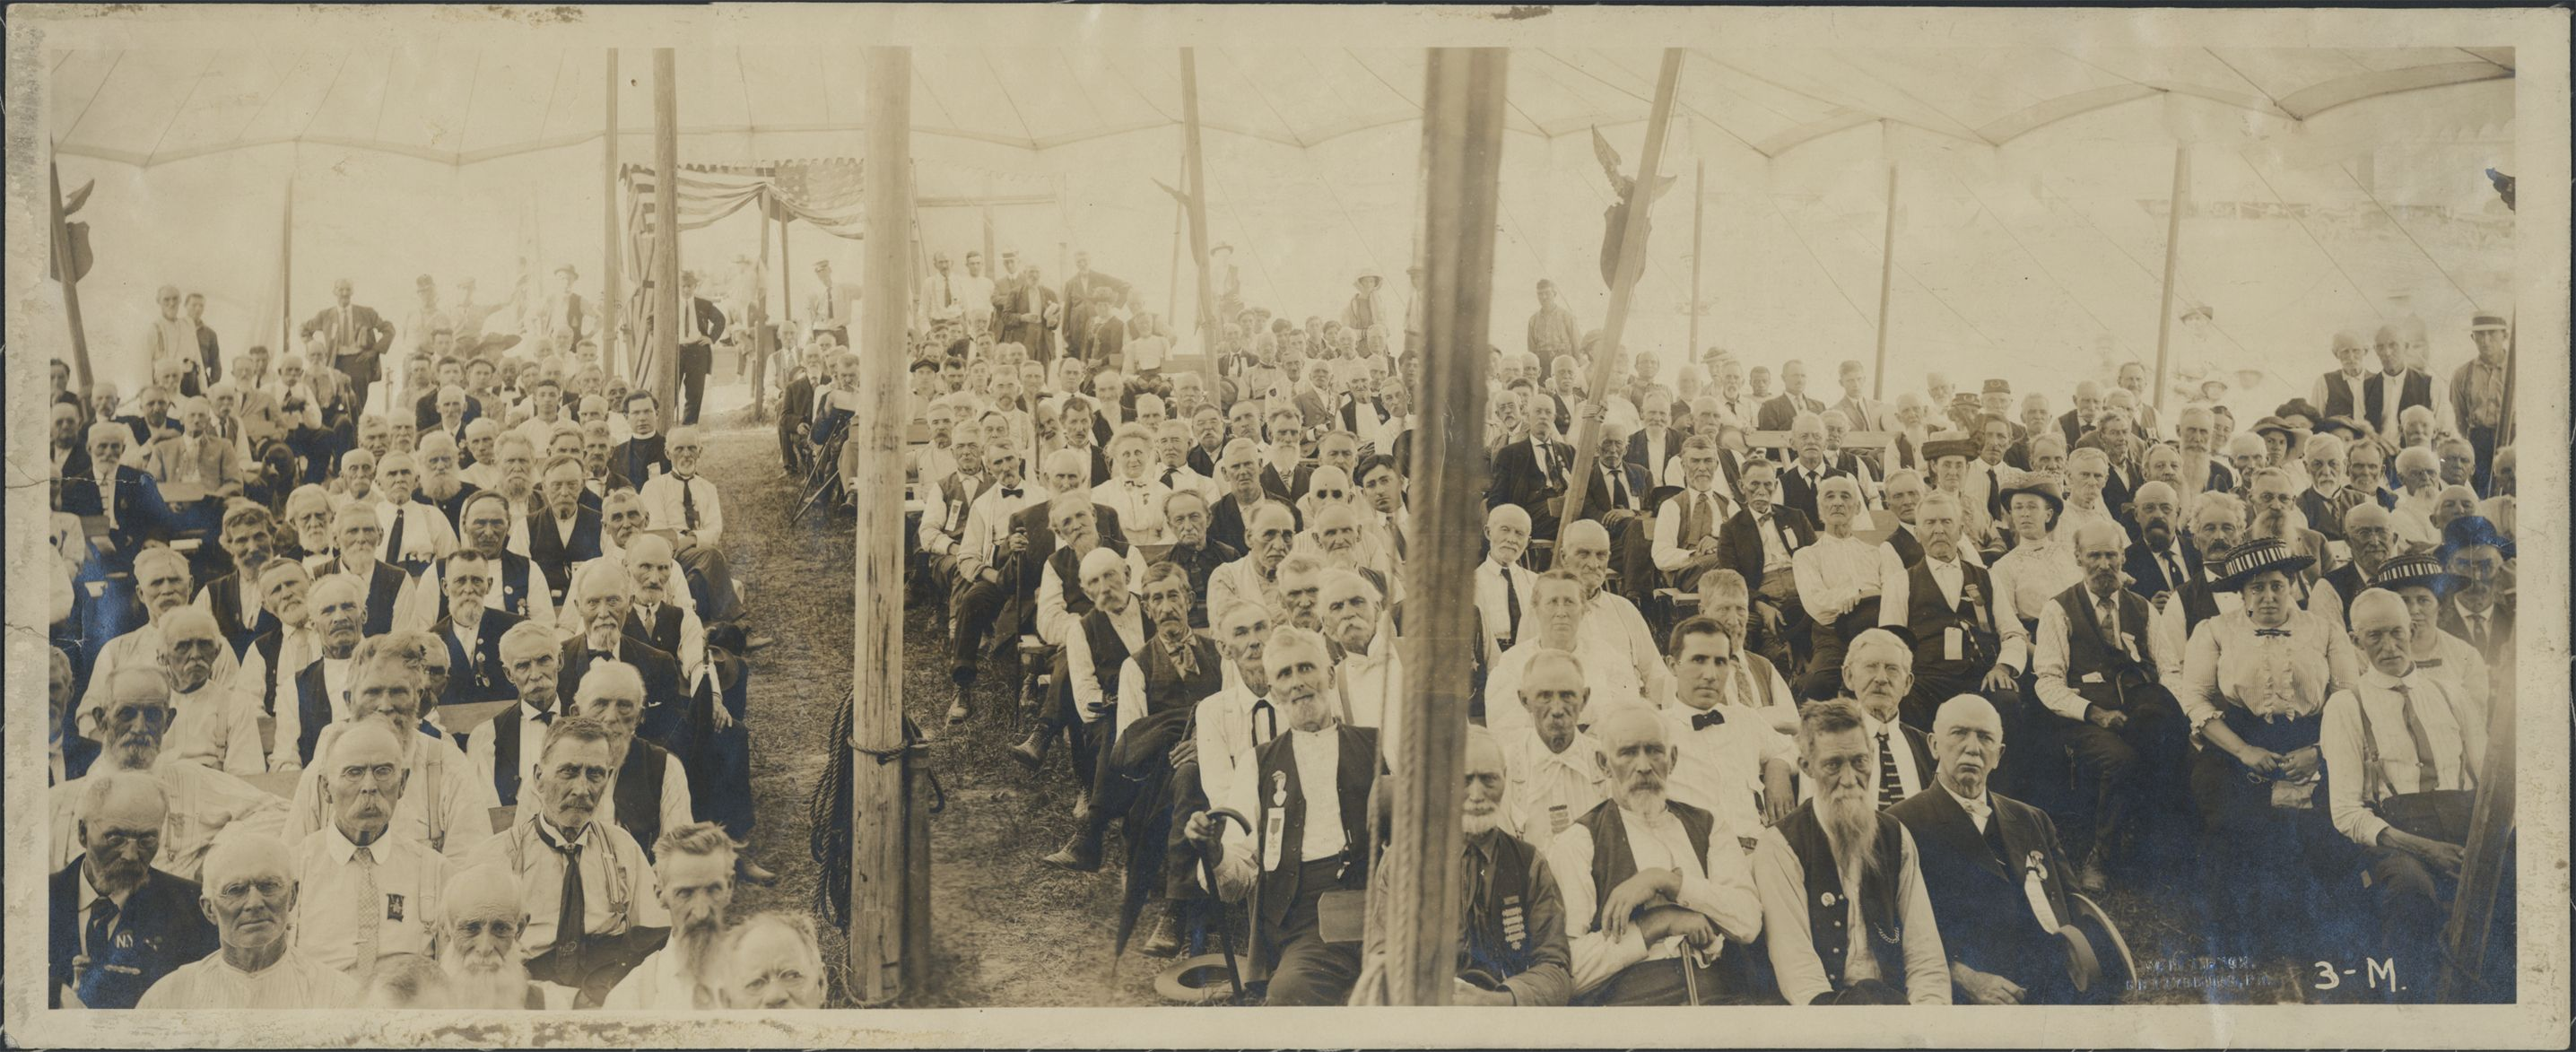 Gettysburg 1913 Reunion This Is The Iron Brigade Amazing Isn T It War Veterans American Civil War History Pictures